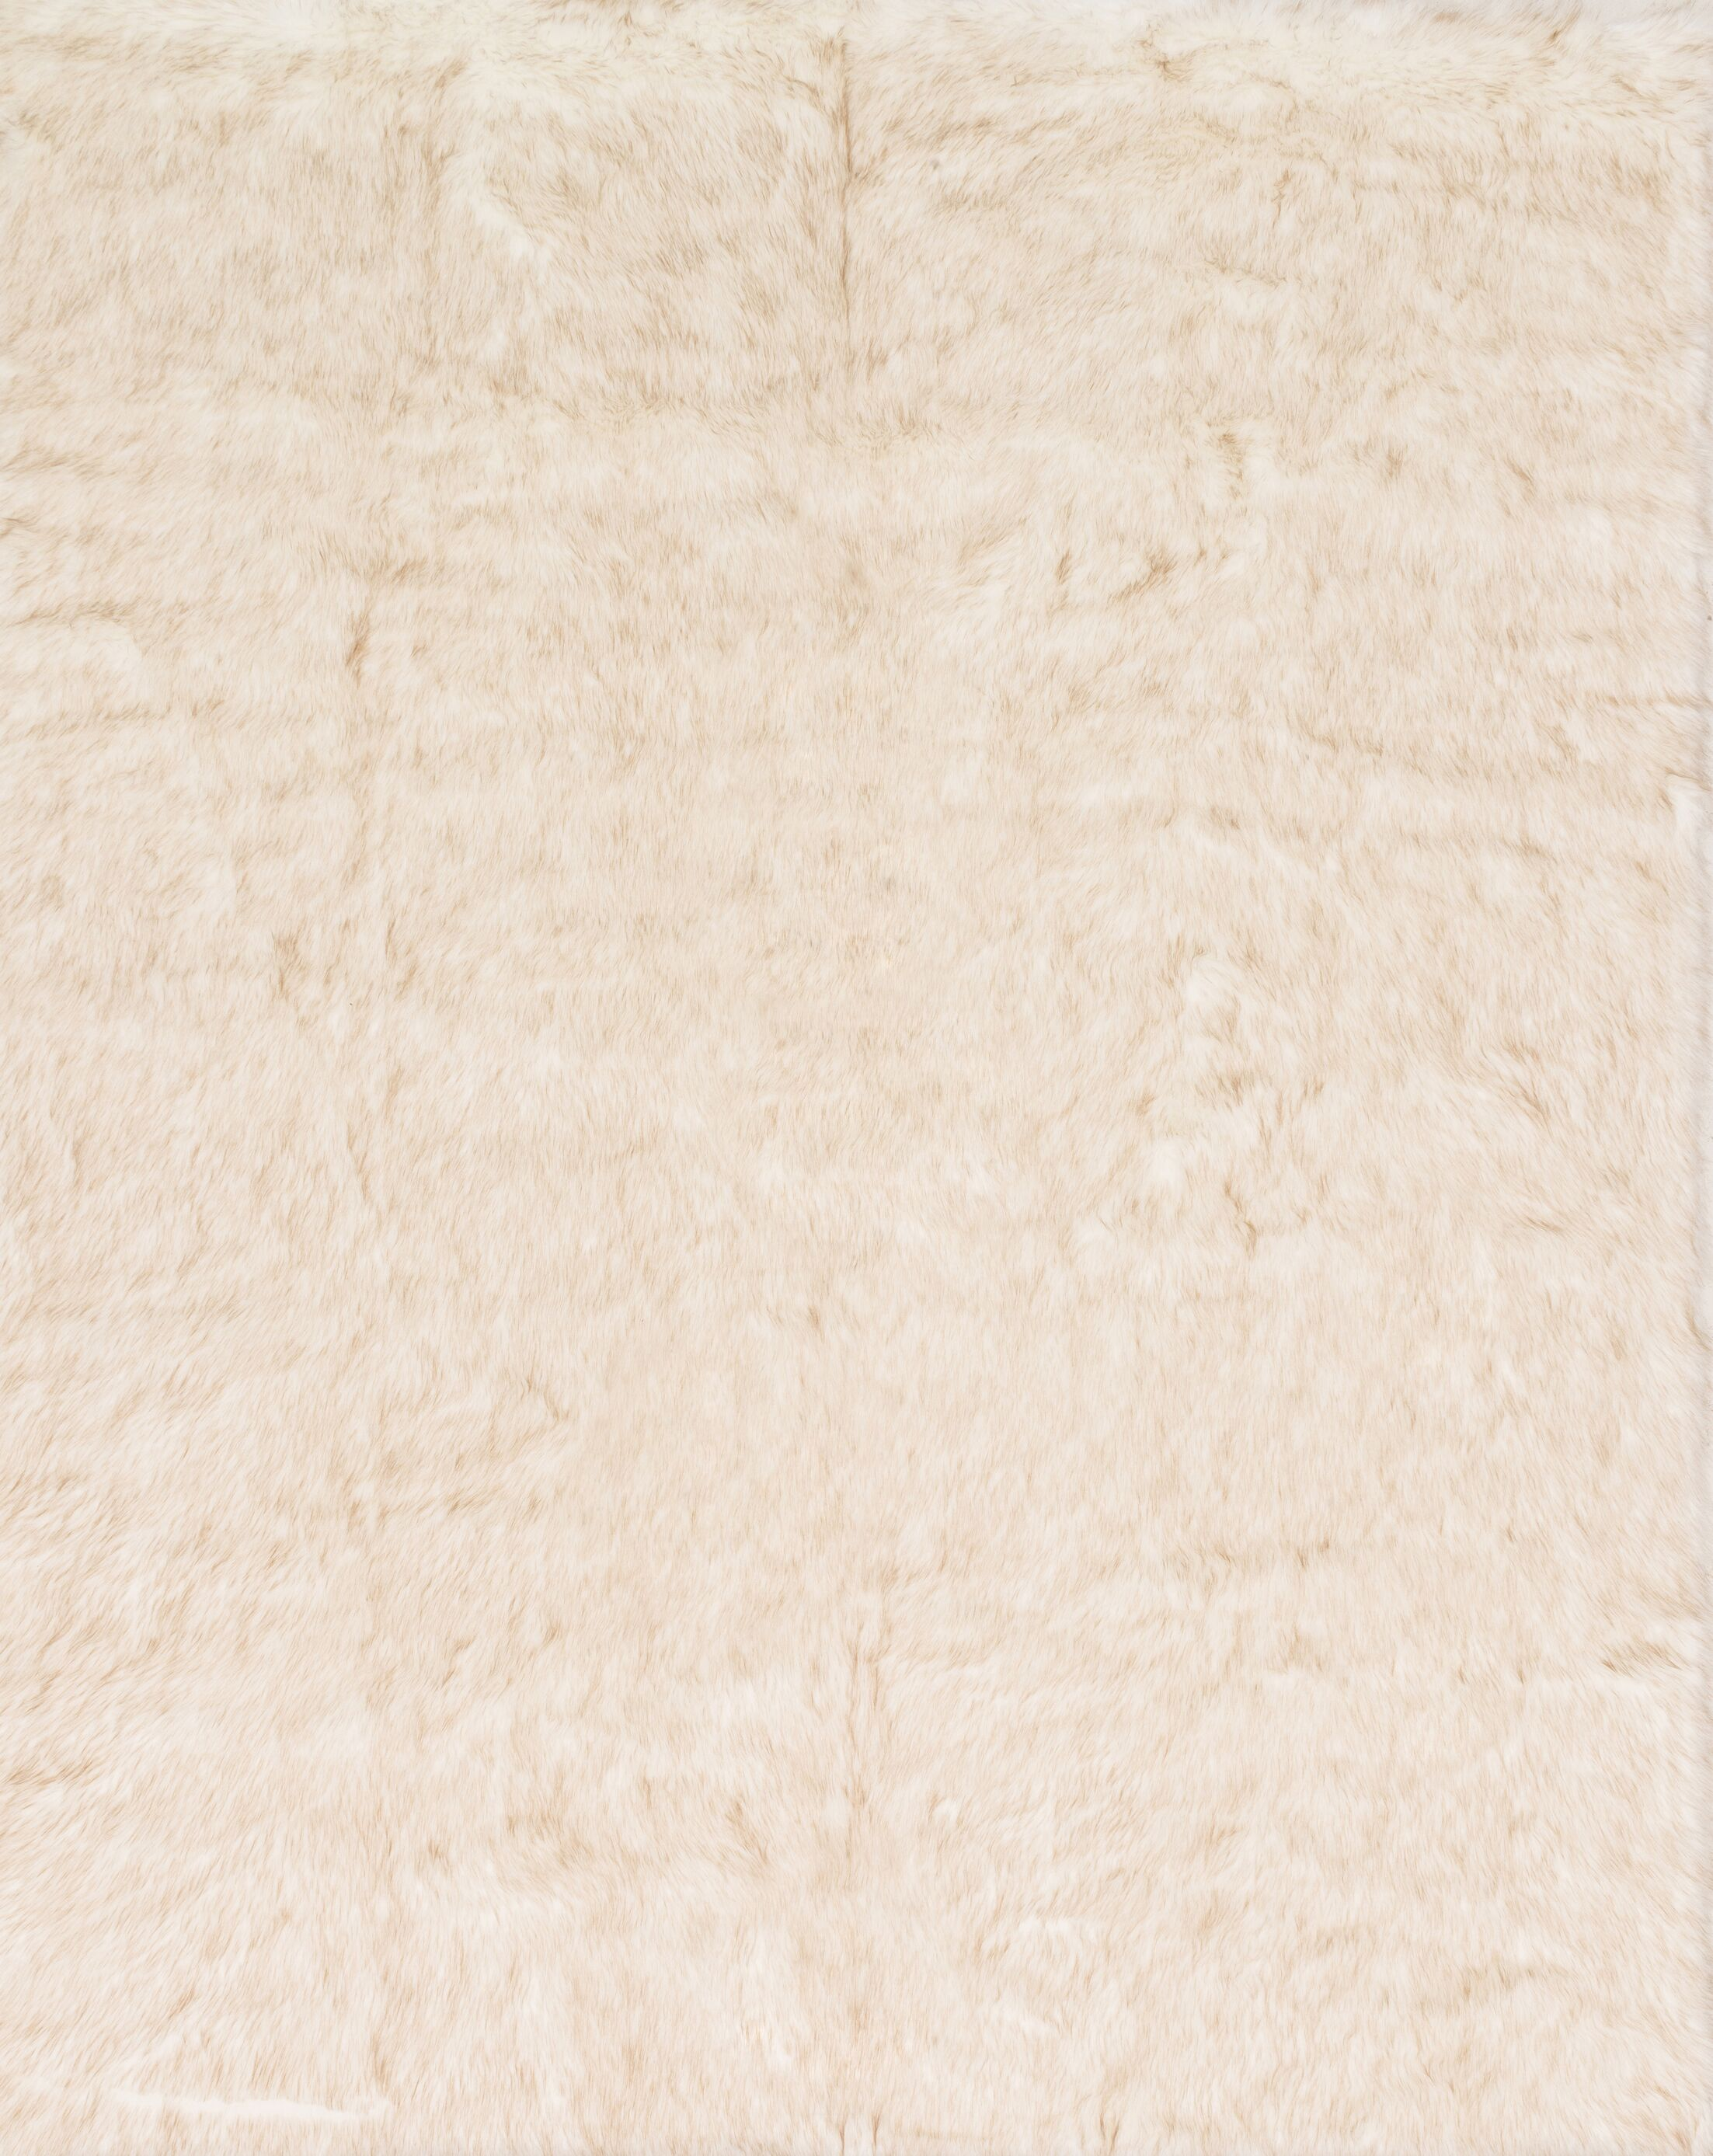 Ashleigh Faux Fur Ivory/Beige Area Rug Rug Size: Rectangle 5' x 7'6